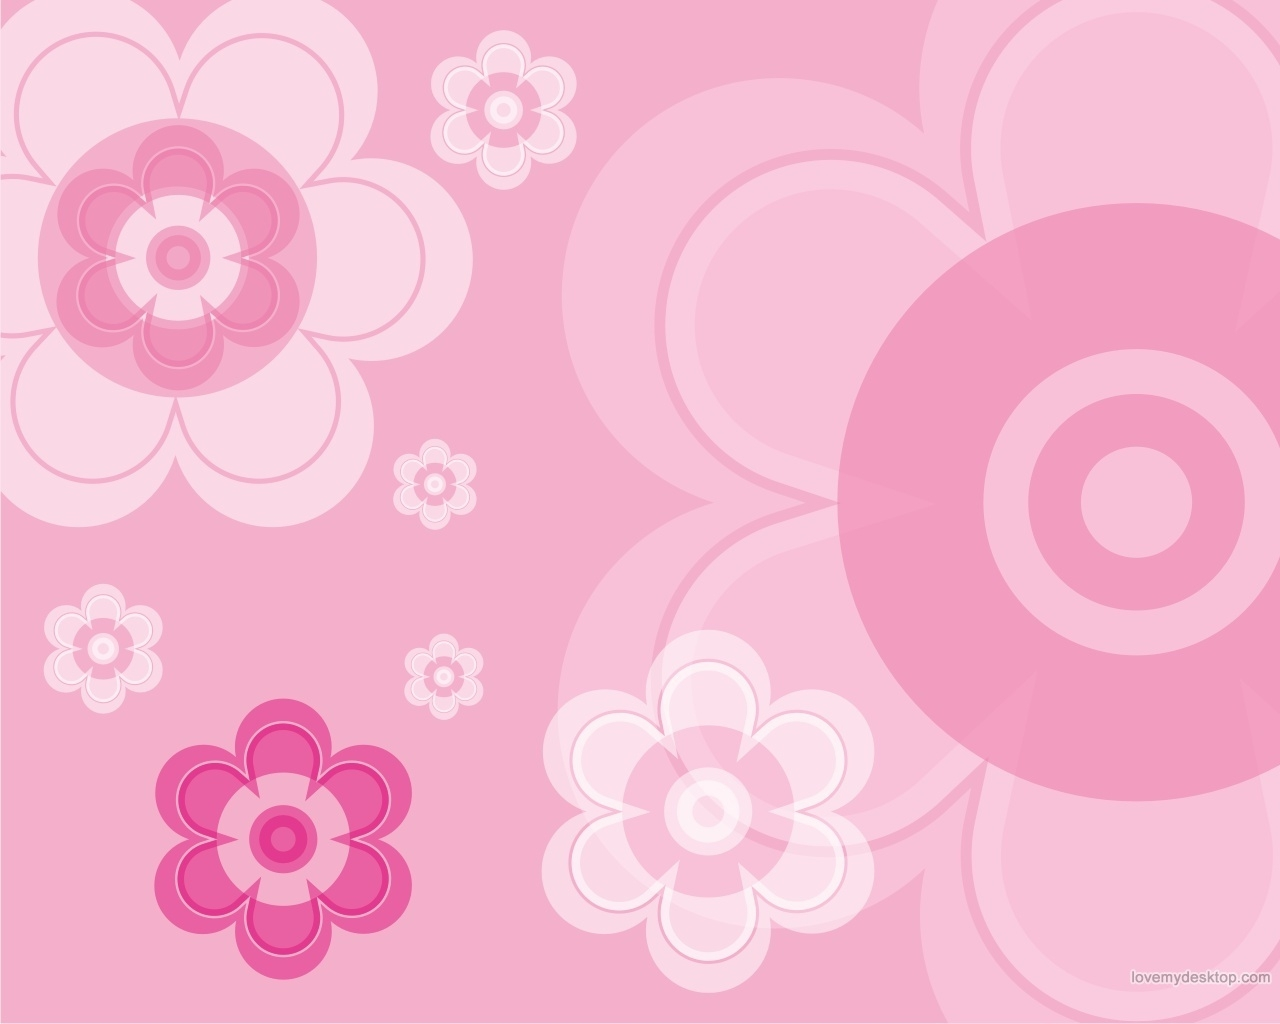 Pretty Girly Wallpaper Backgrounds | fashionplaceface.com